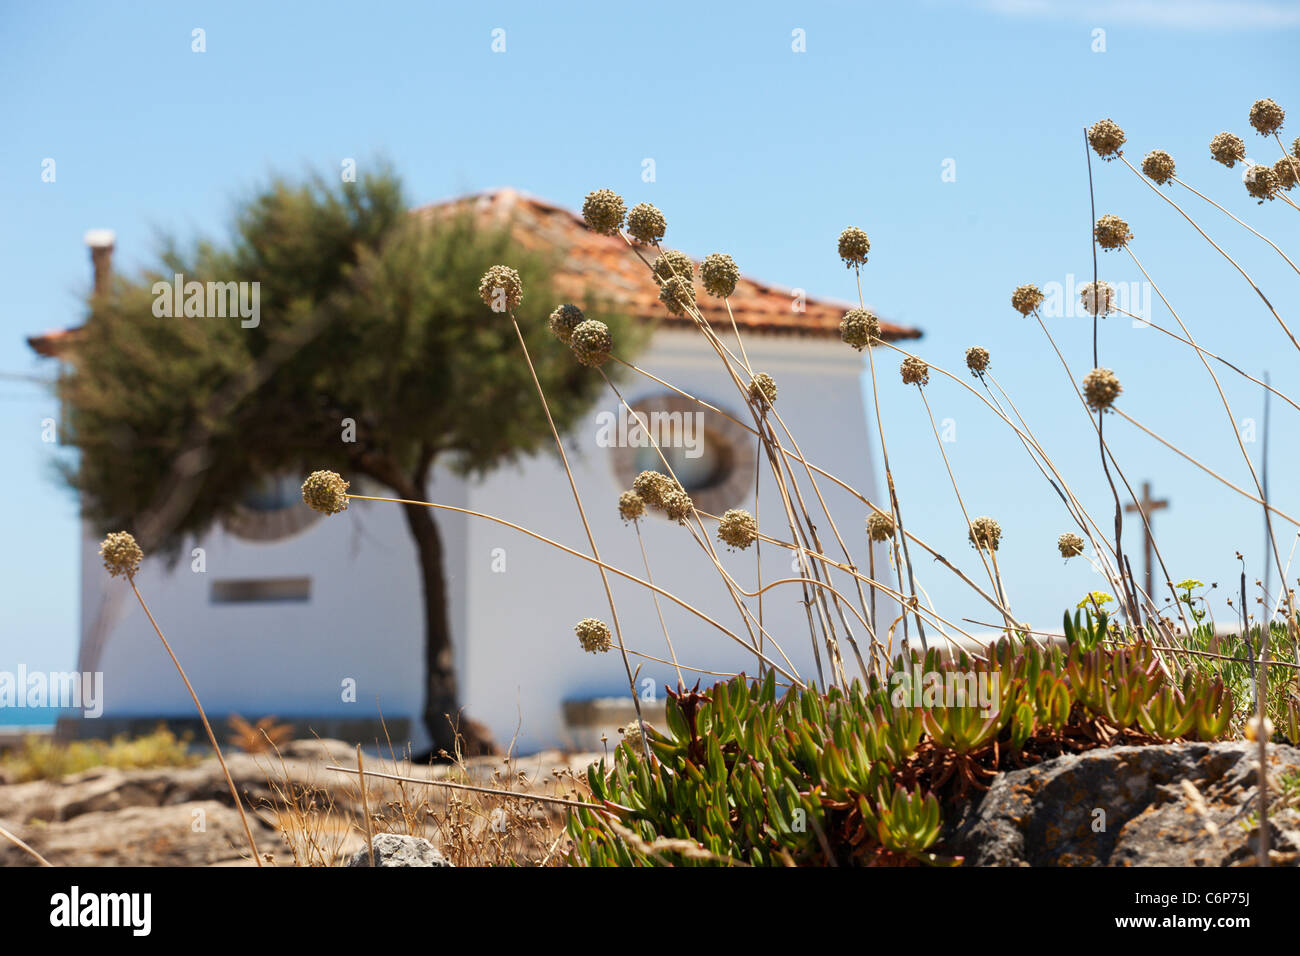 Beautiful house with round windows on the coast. Tree and flowers near house. Cascais, Portugal. Stock Photo